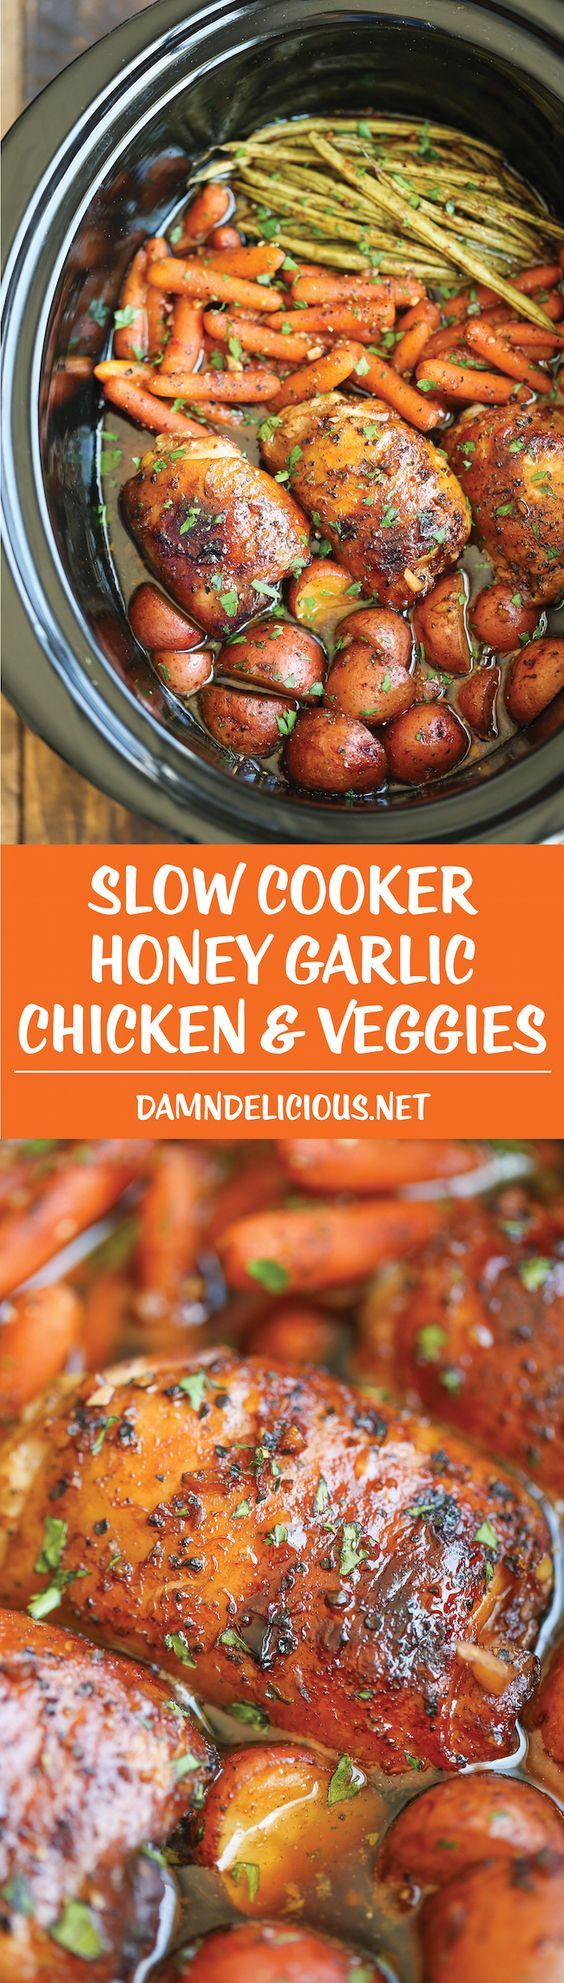 Slow Cooker Honey Garlic Chicken and Veggies - The easiest one pot recipe ever. Simply throw everything in and that's it!